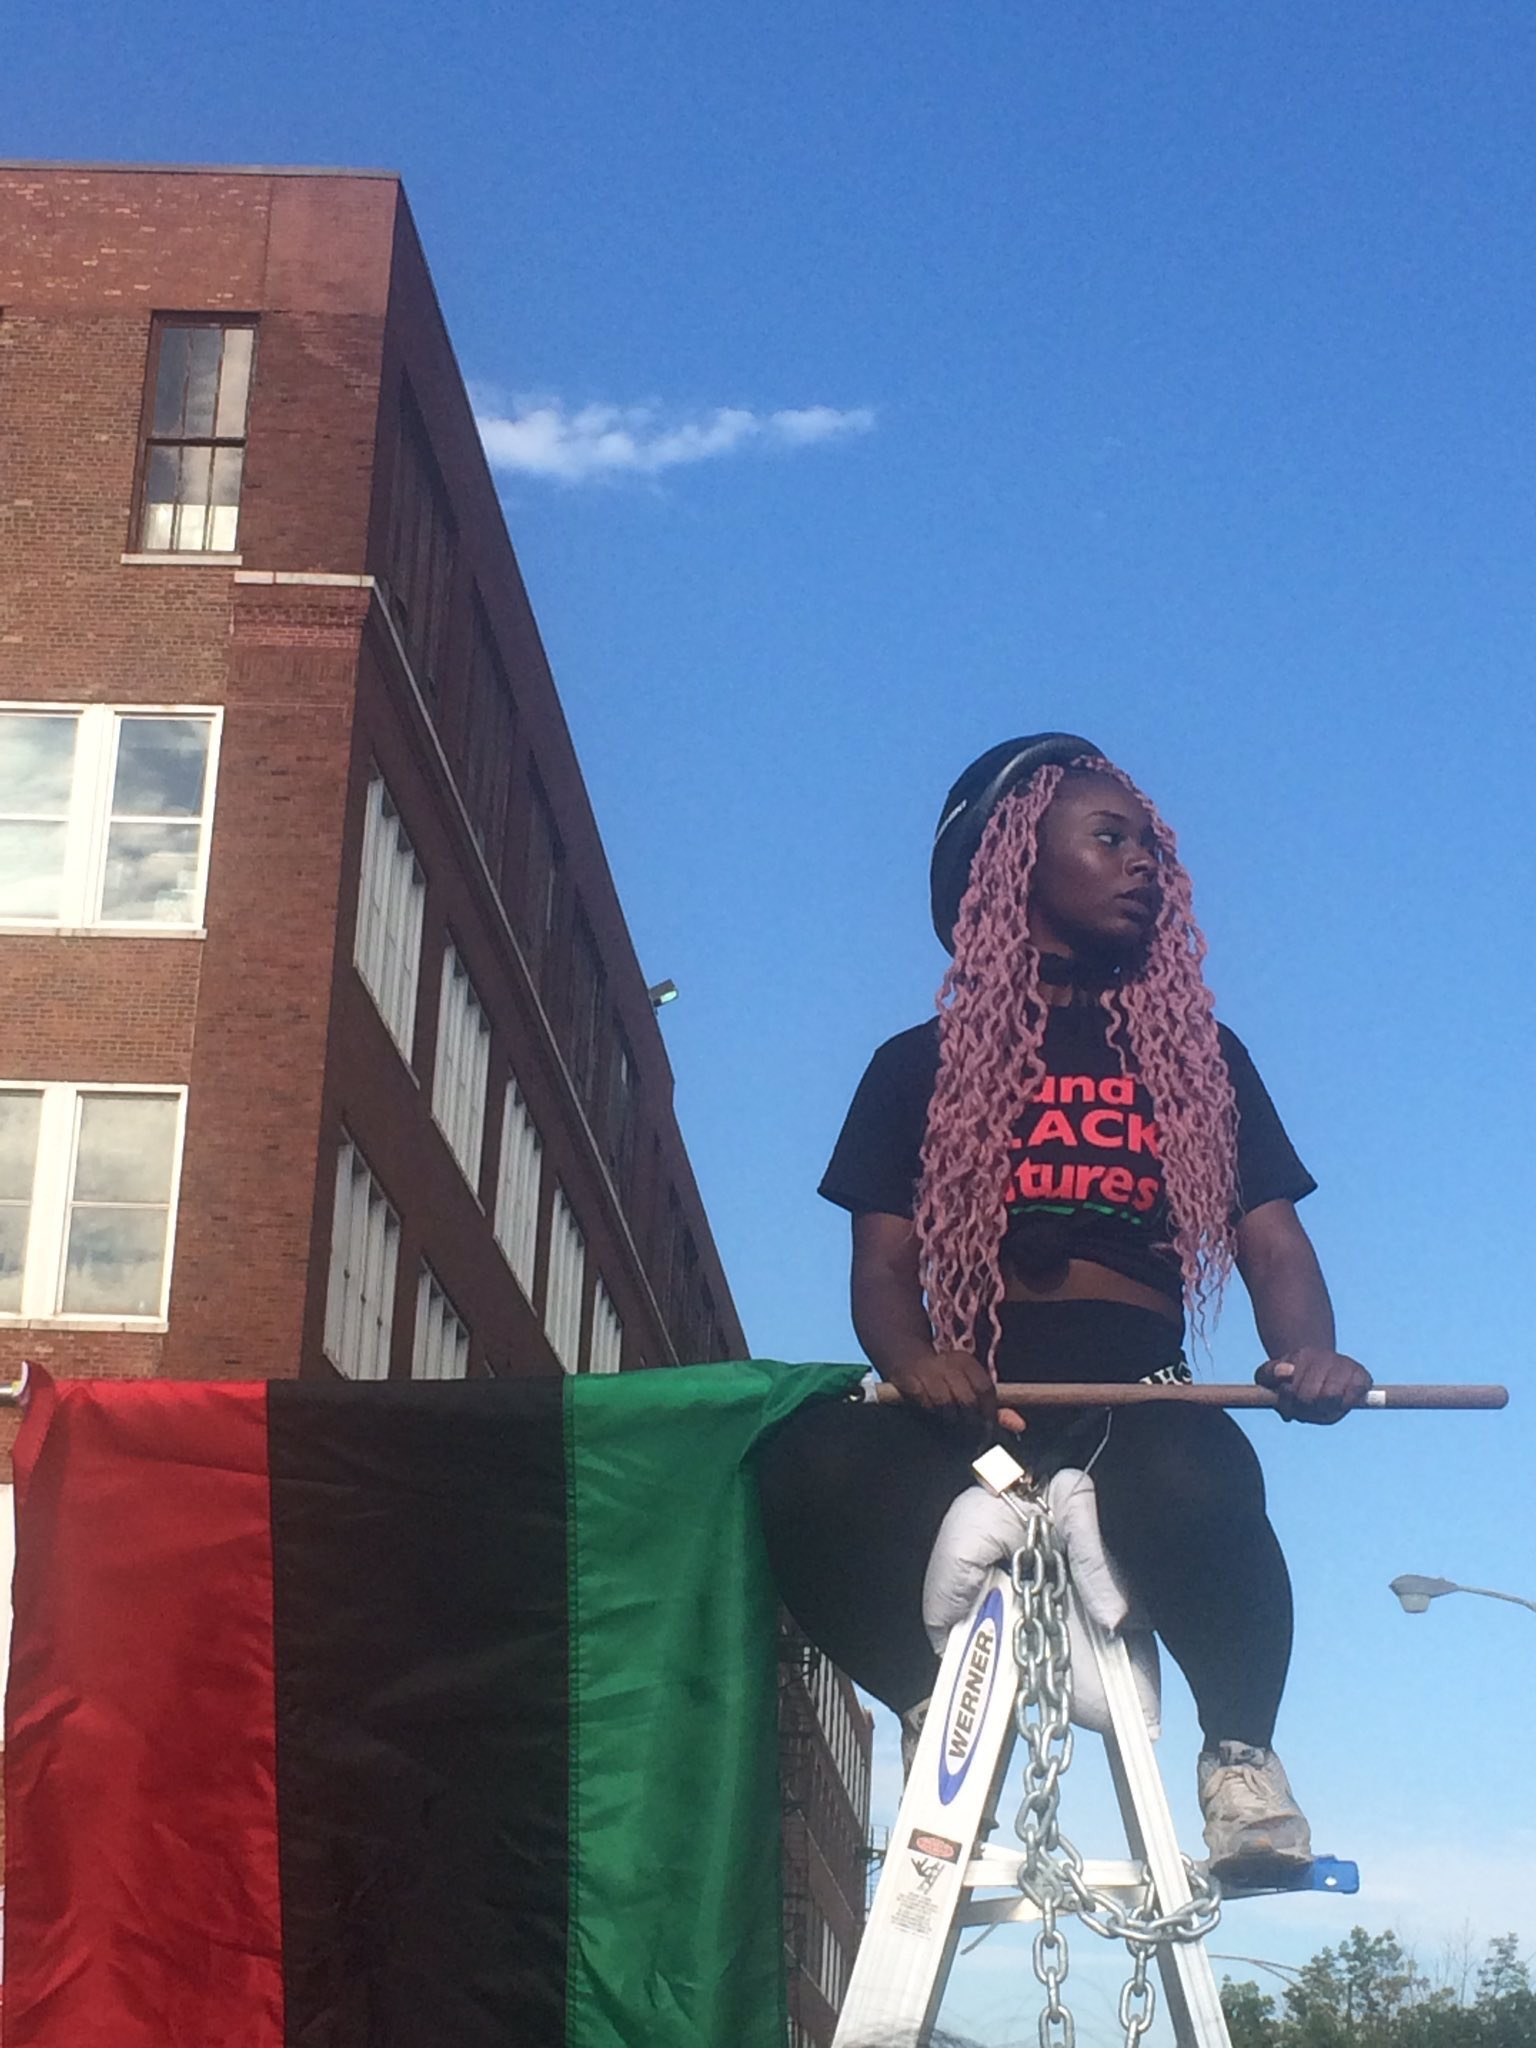 In Chicago, protesters against the Fraternal Order of Police chose to shut down Homan Square, the notorious old police warehouse, where for decades, under the direction of the infamous Lt. Jon Burge, police tortured people they detained. – Photo: @RicWilson, Twitter